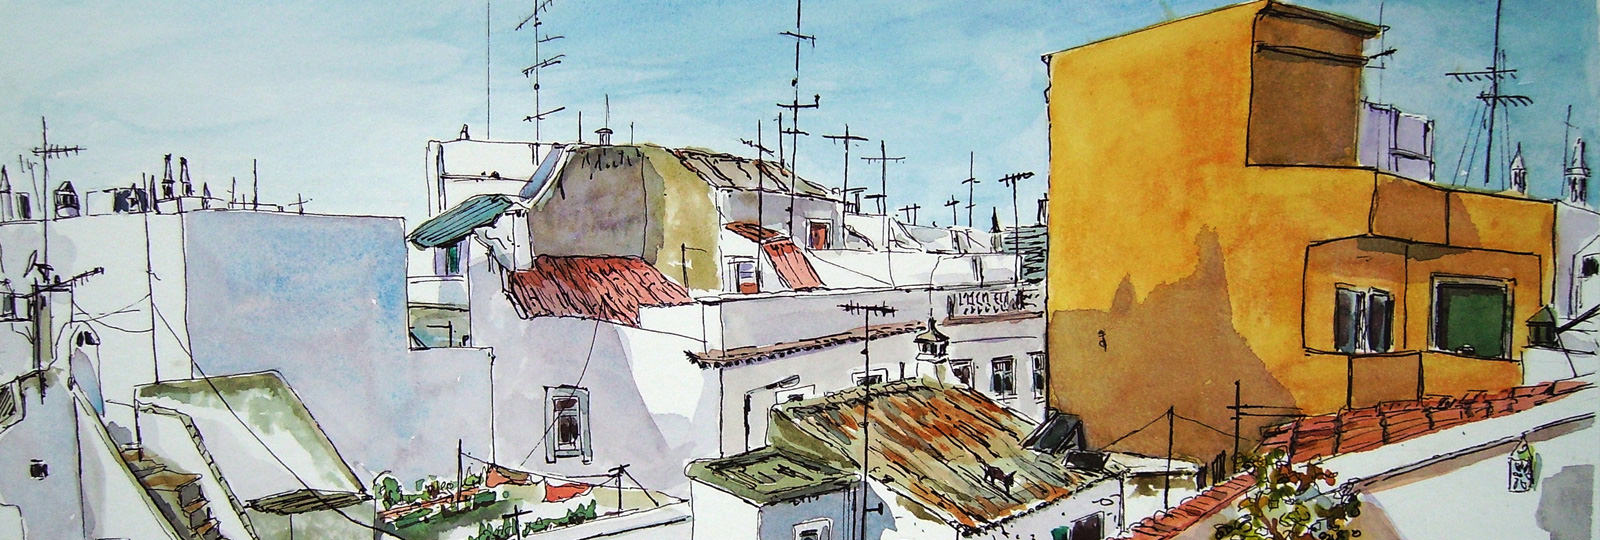 Painting of roof tops in Olhao, Portugal